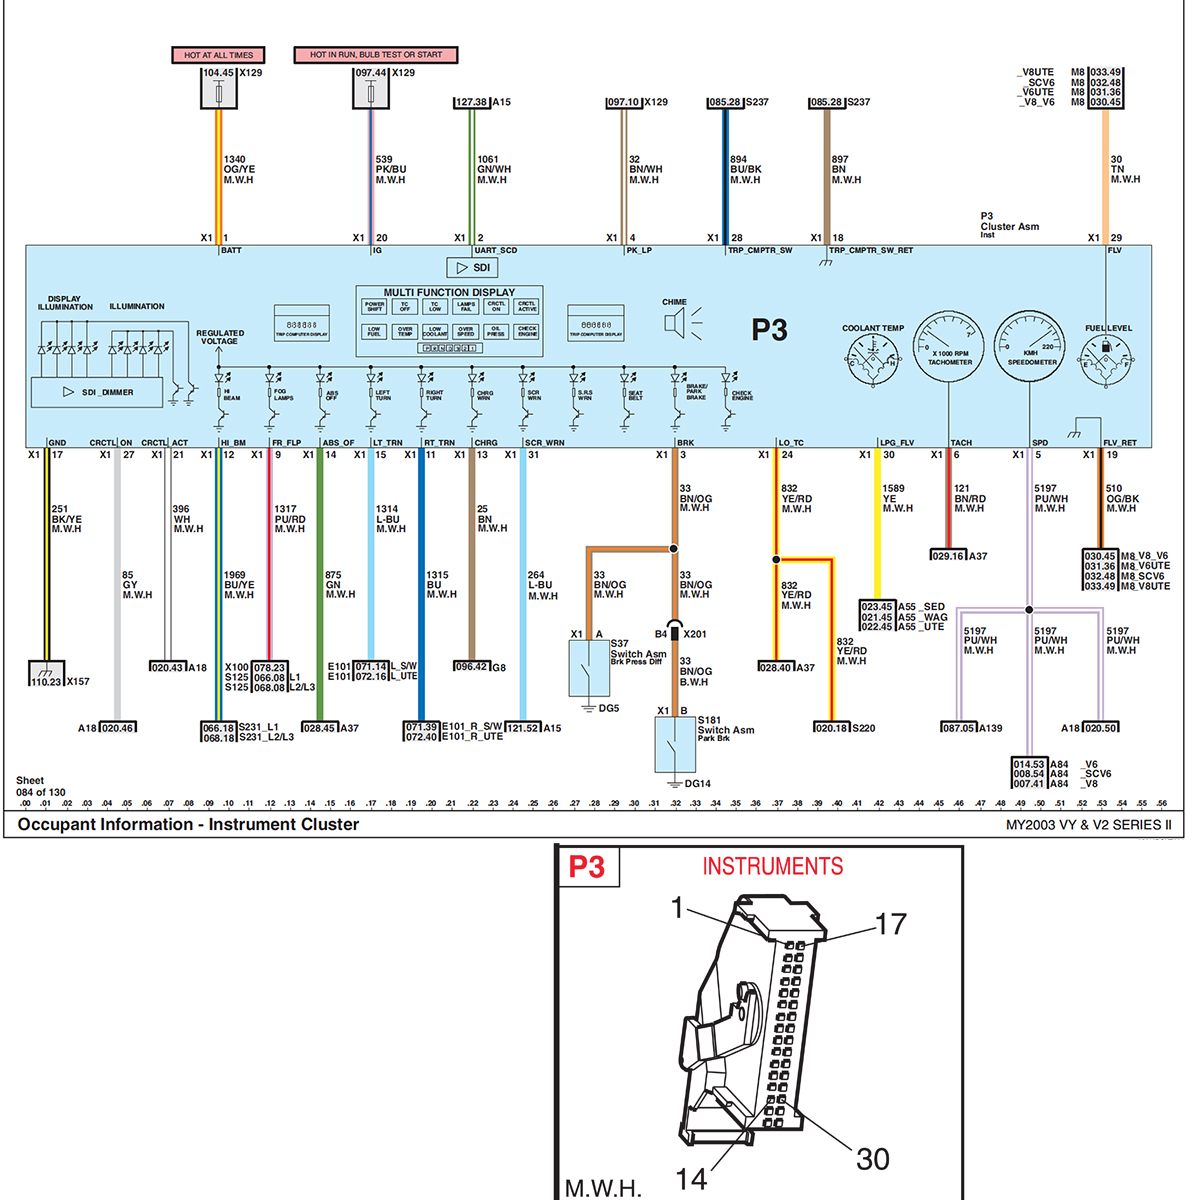 Vs Wiring Diagram Schematics Vl800 Schematic Vy Commodore Electronic Diagrams Circuits